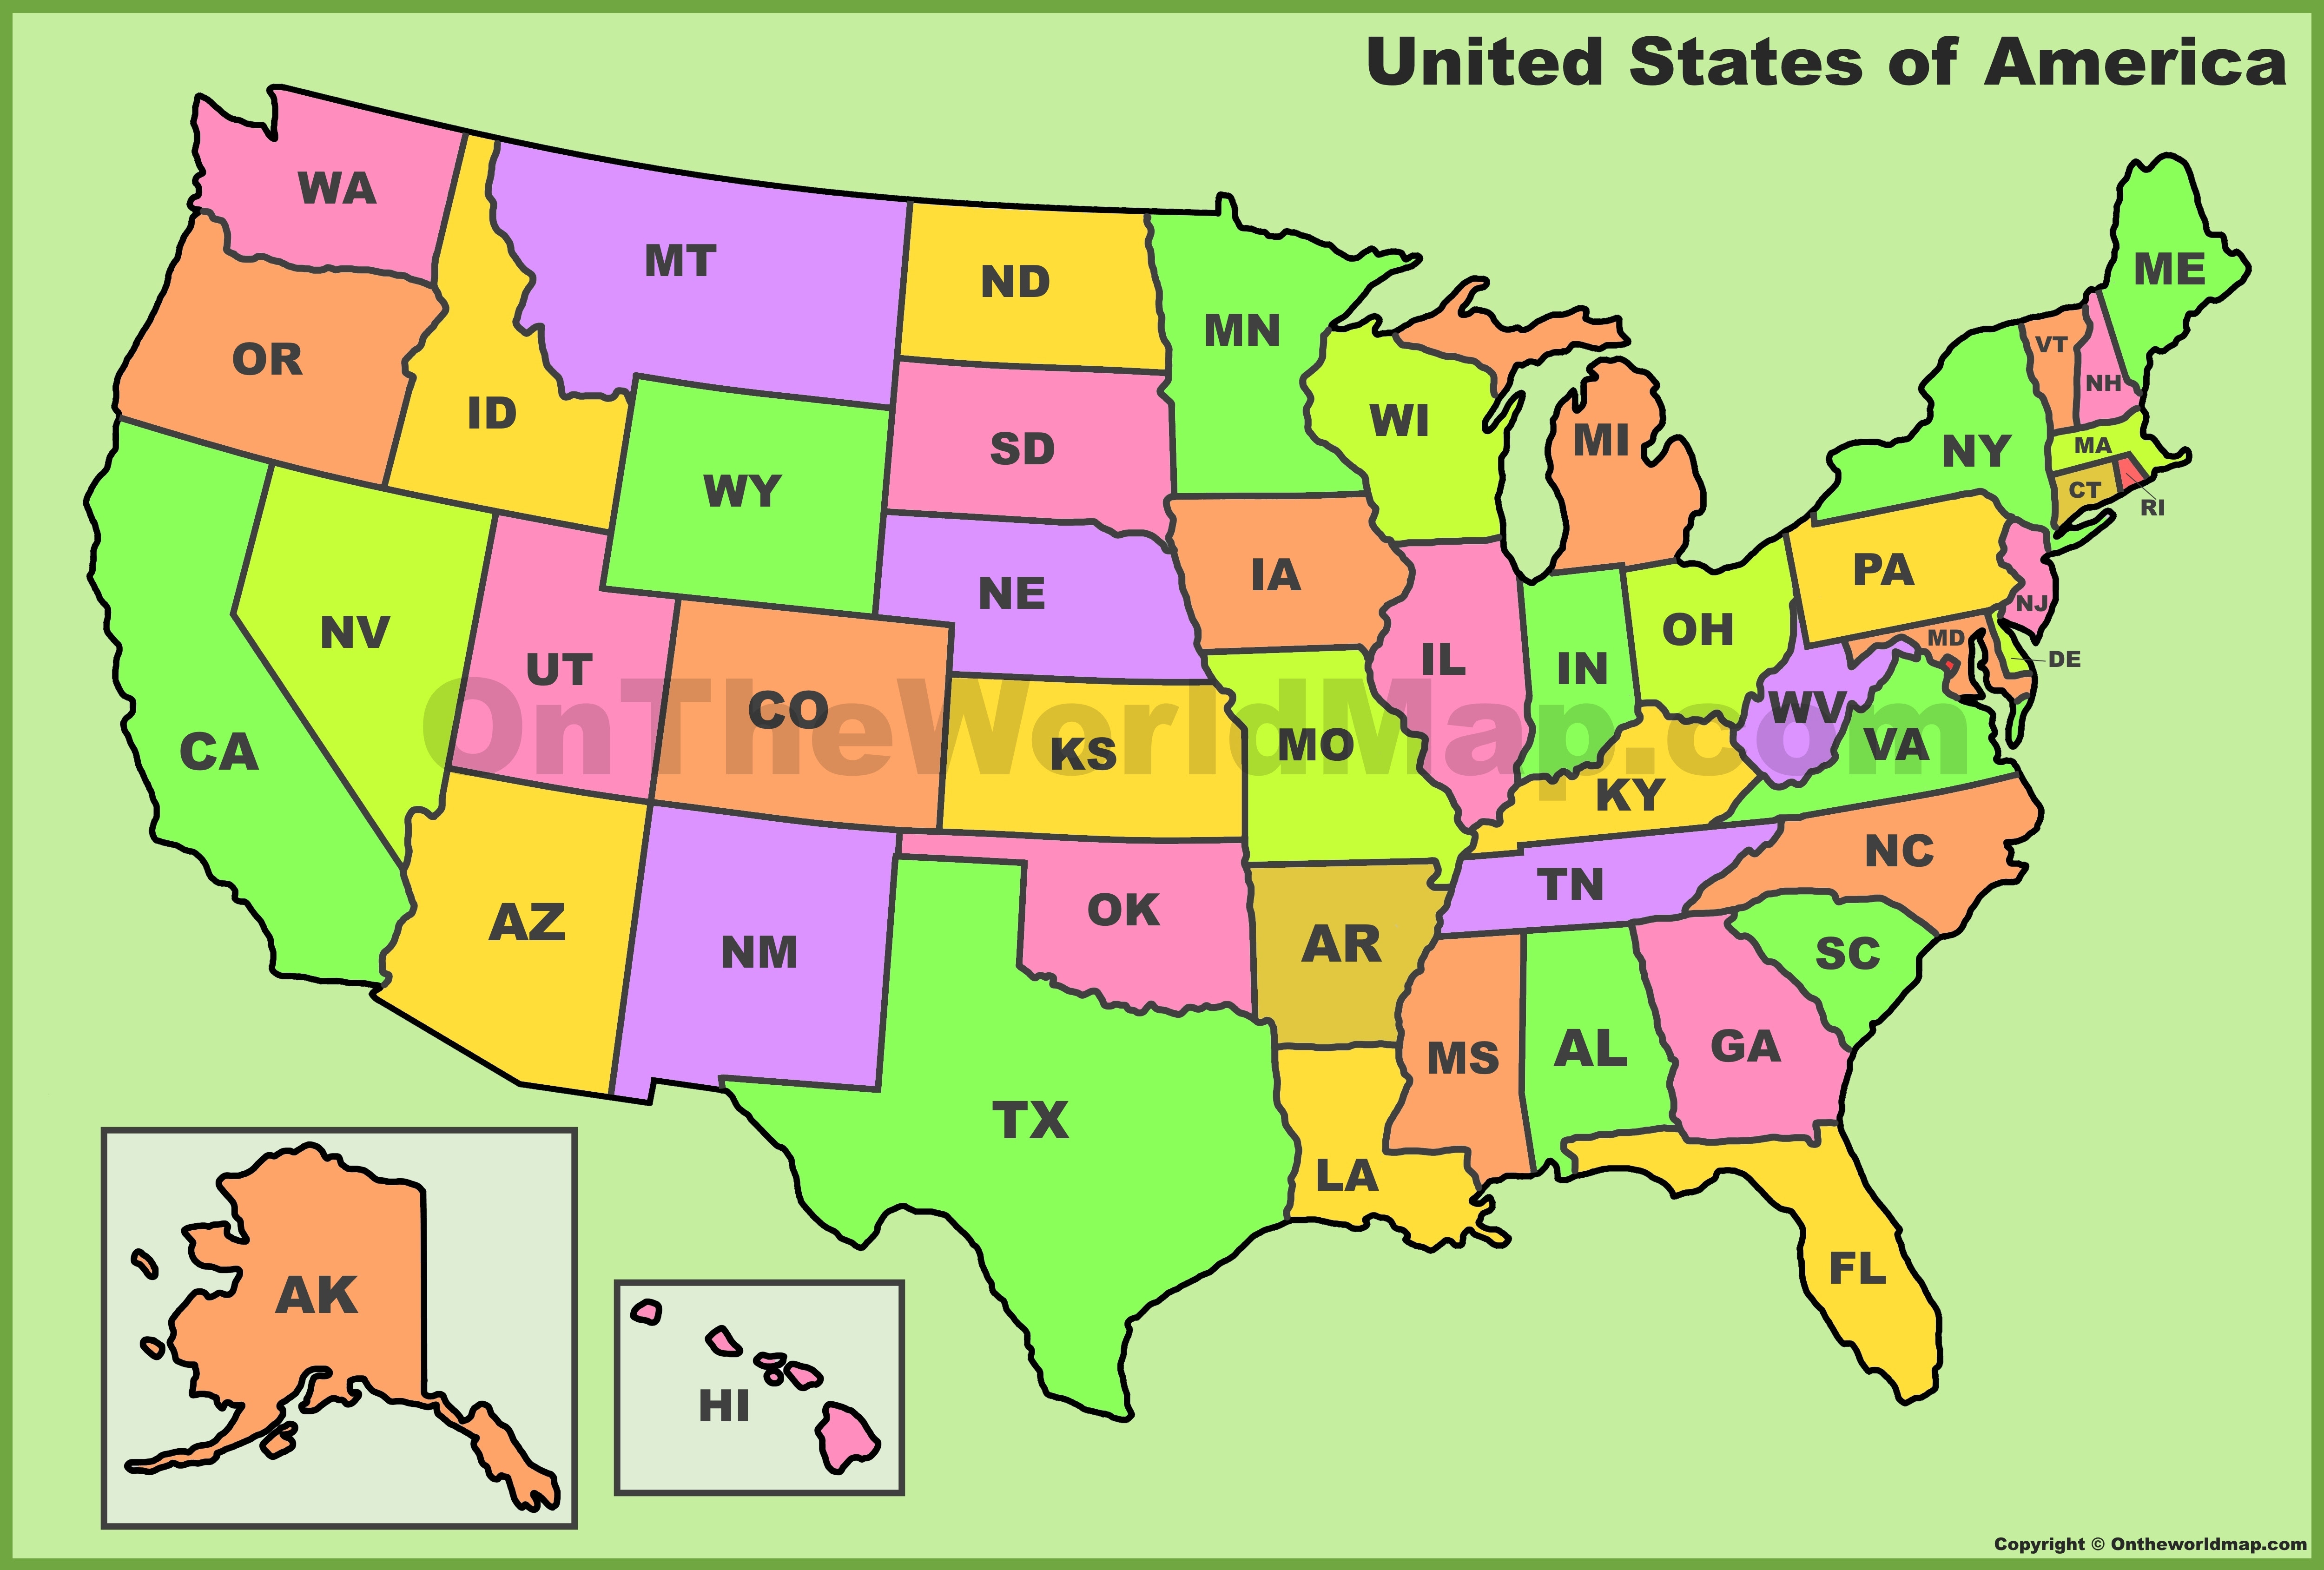 A lot of people can come for enterprise, while the relaxation concerns review. Us State Abbreviations Map